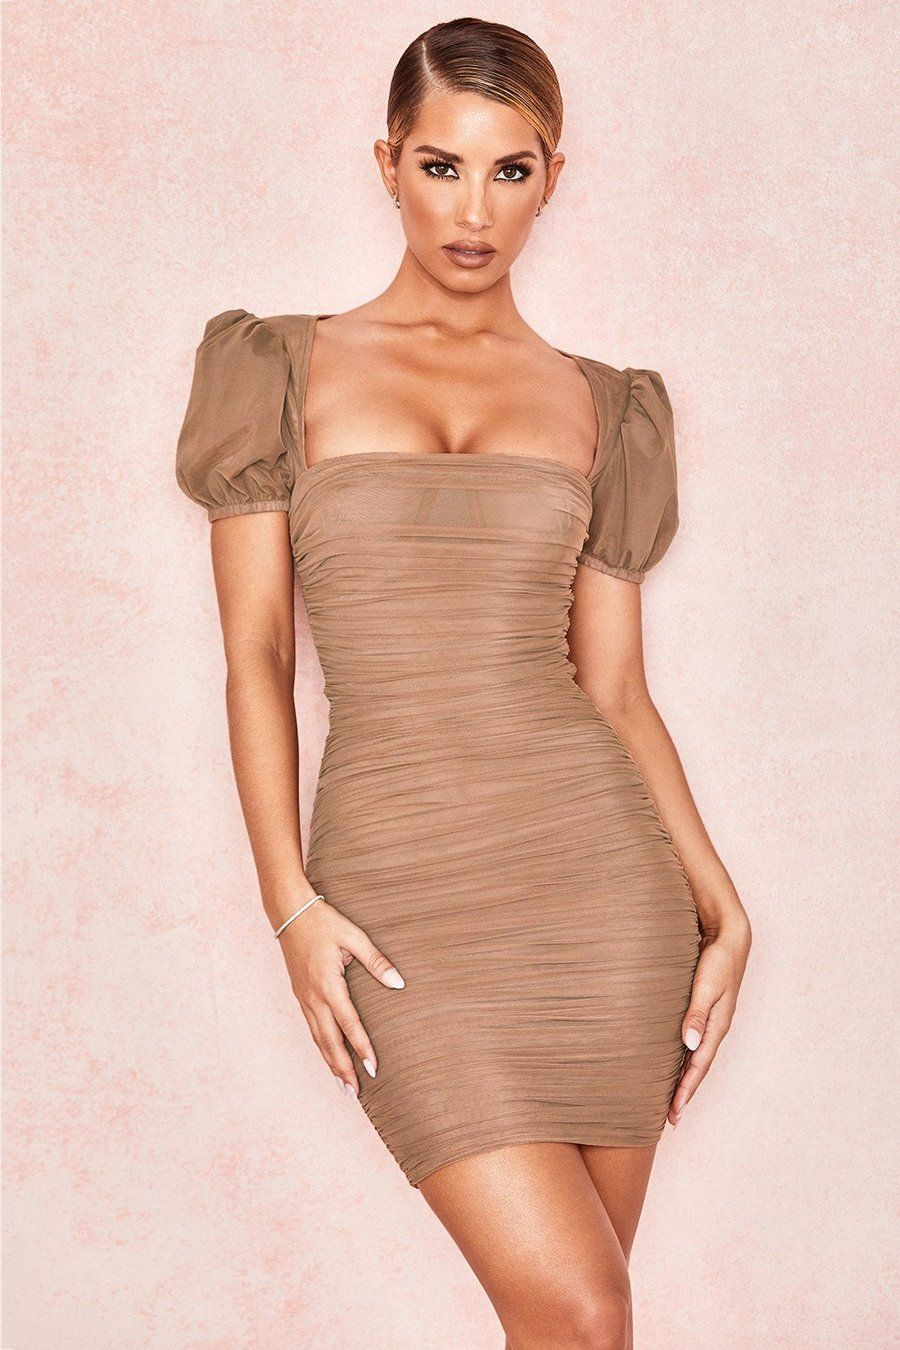 Tan Puff Sleeve Ruched Dress Luxepartydress Bodycon Dress Puff Sleeve Dresses Ruched Dress [ 1350 x 900 Pixel ]